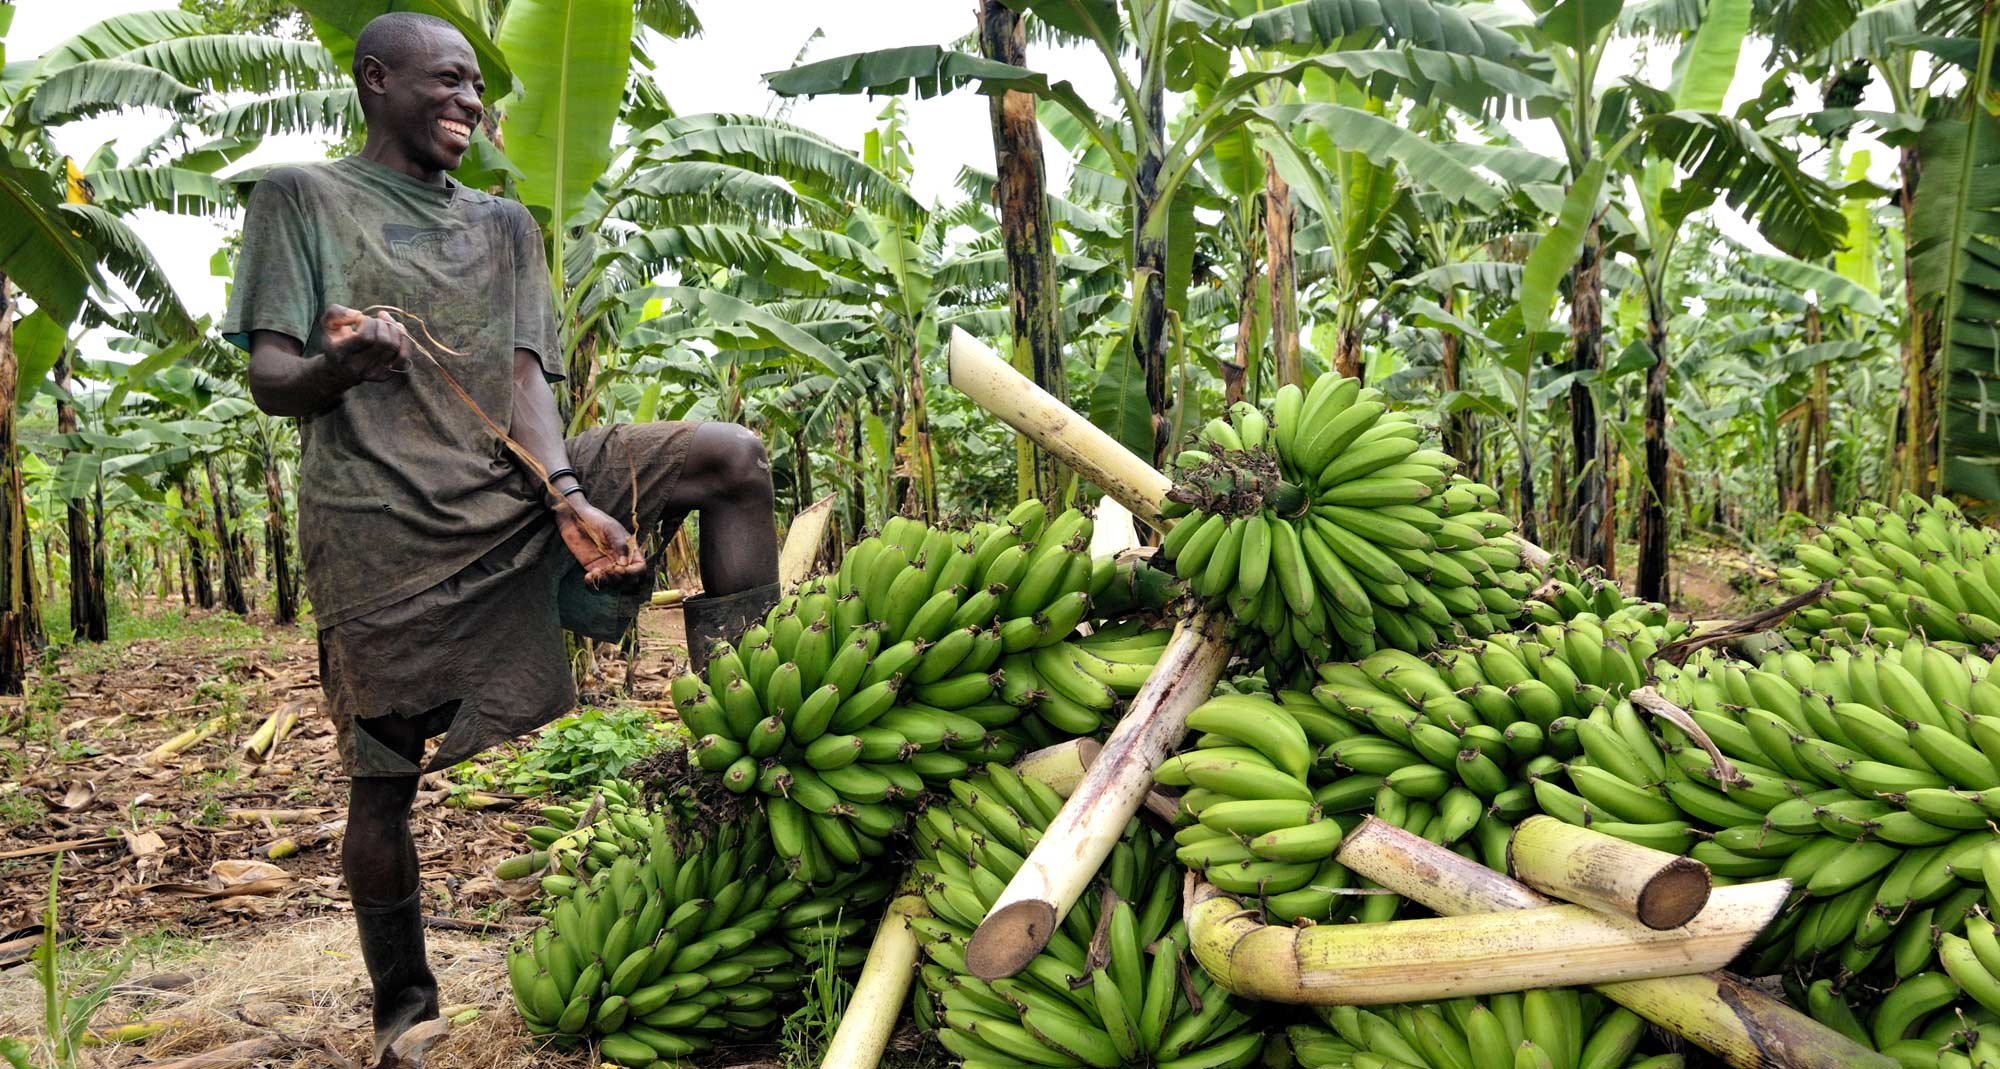 Farming is the biggest income generating sector in Africa (PHOTO/Courtesy).